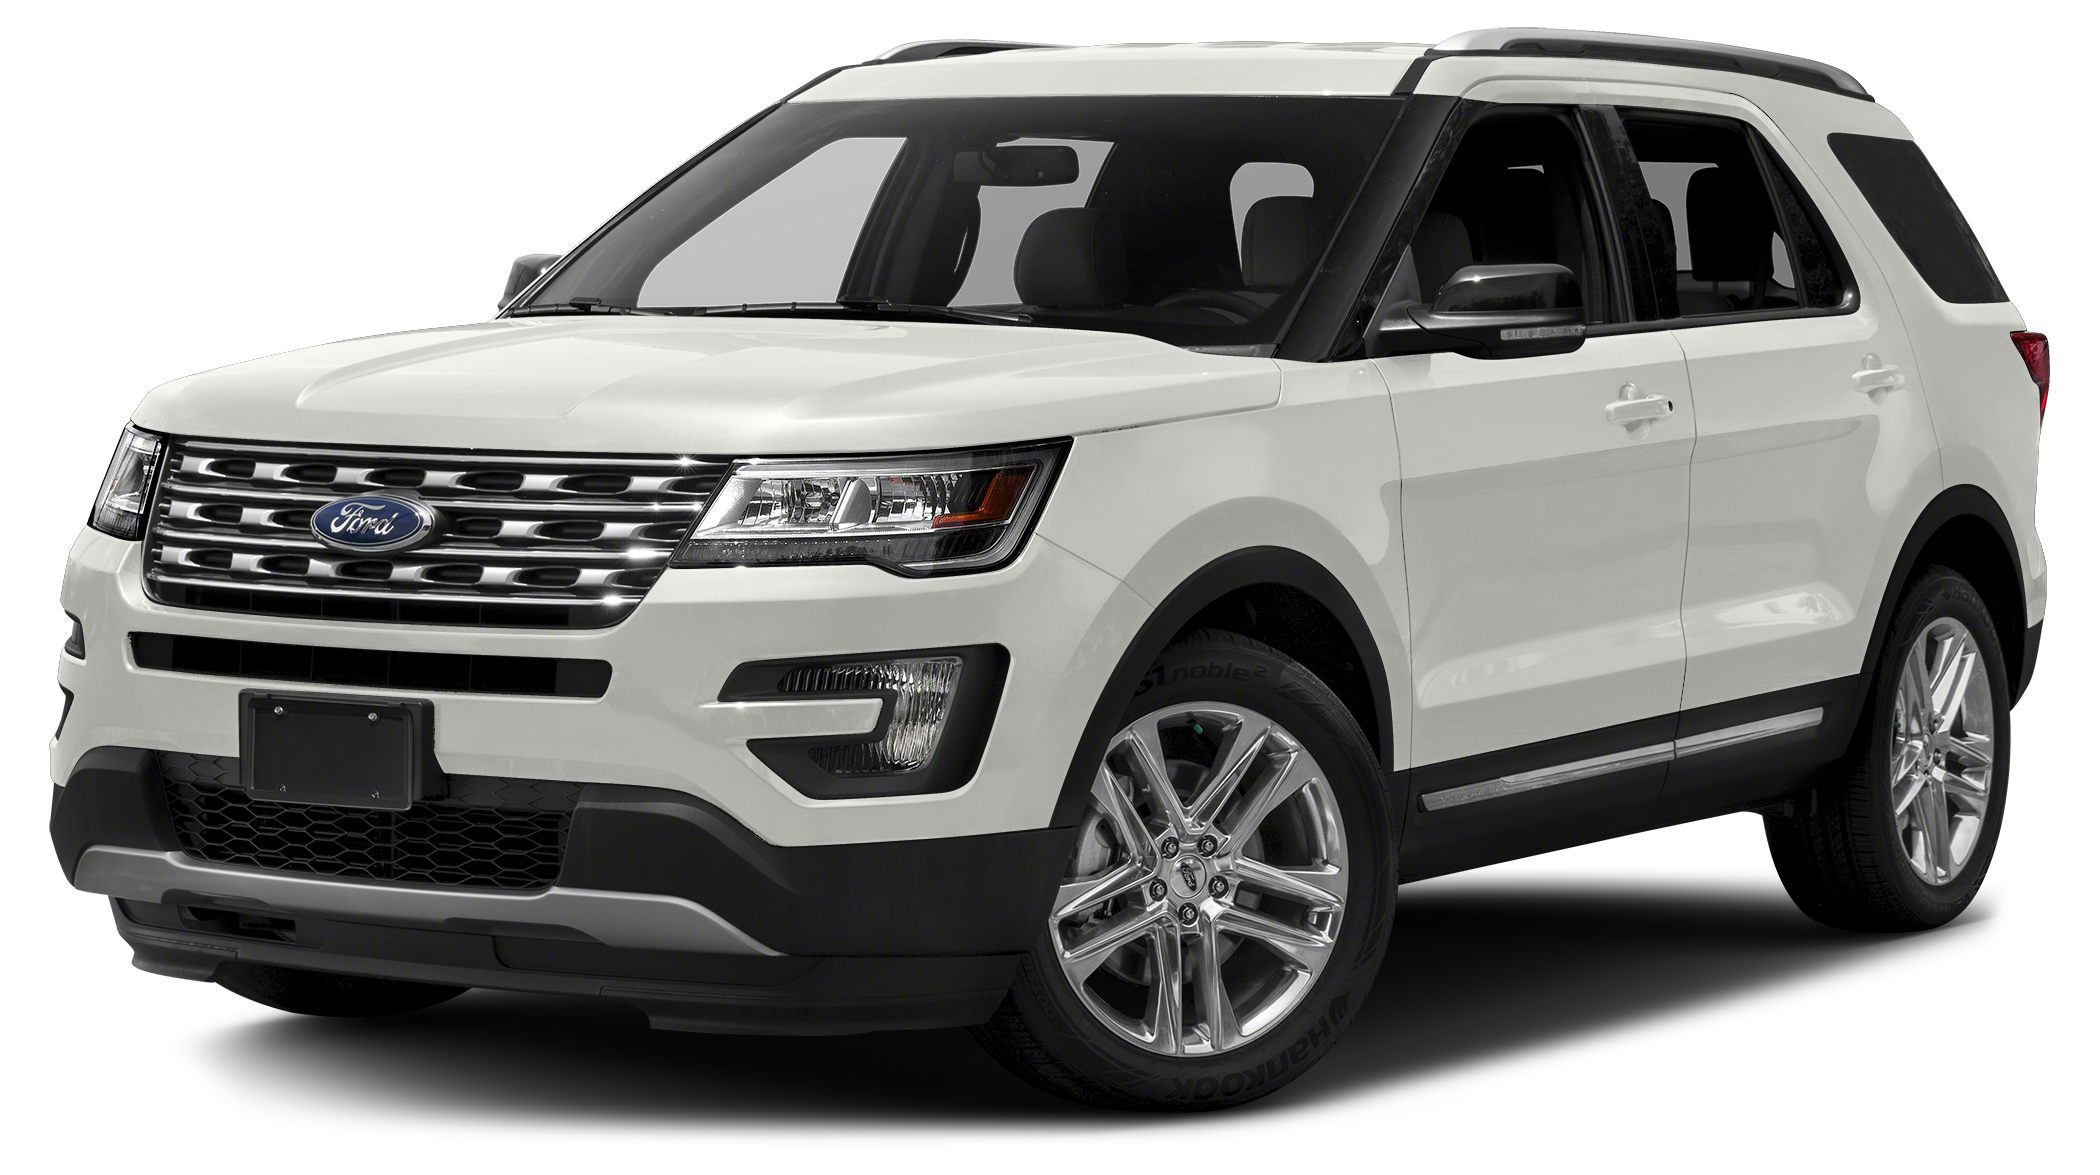 2017 Ford Explorer XLT Price includes 2000 - Retail Customer Cash Exp 04032017 6614 off M